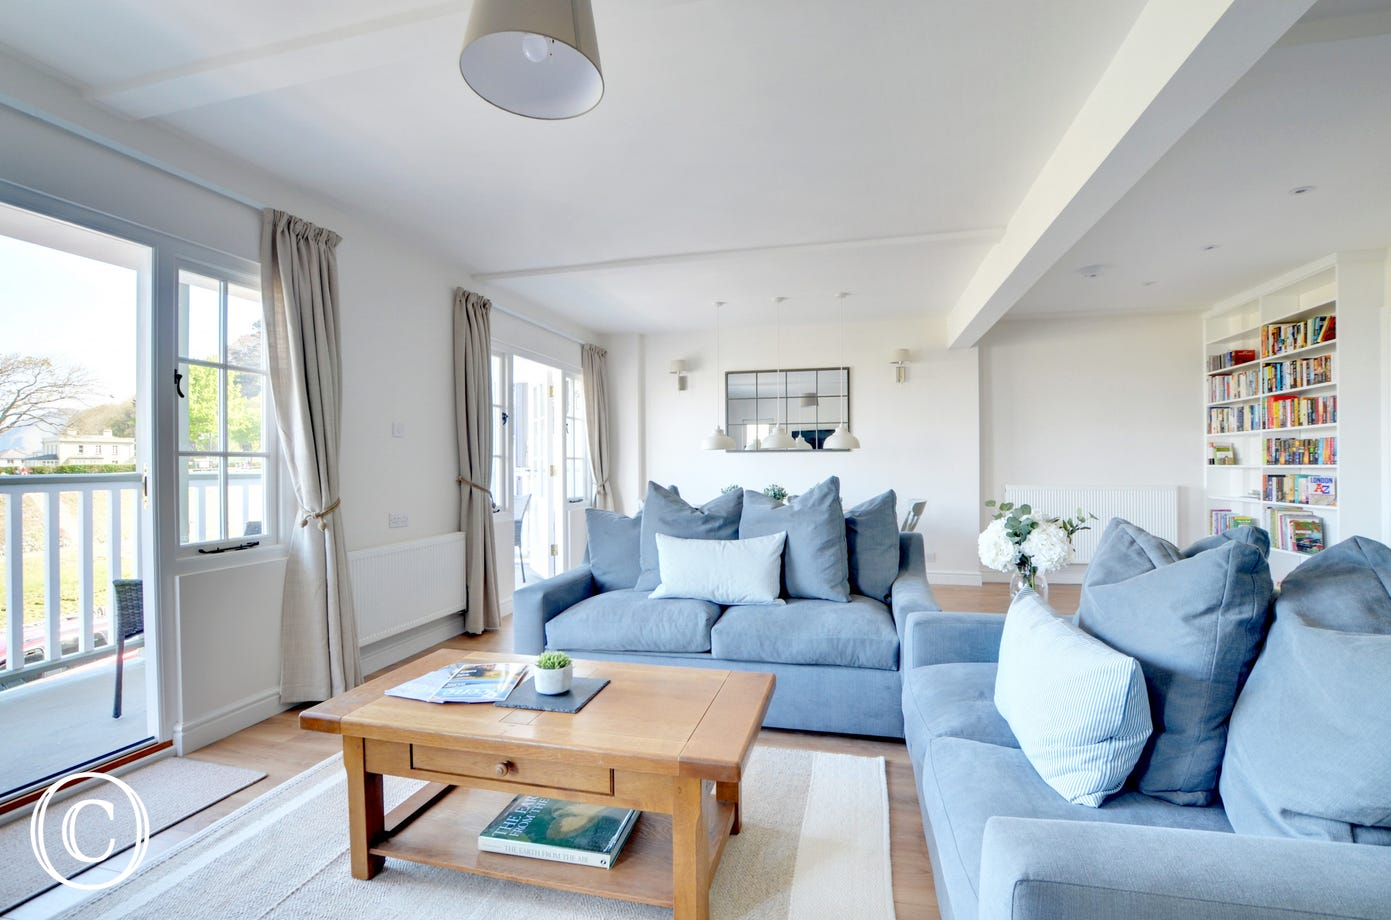 The open plan living area is spacious, light and airy and provides extremely attractive and high quality accommodation